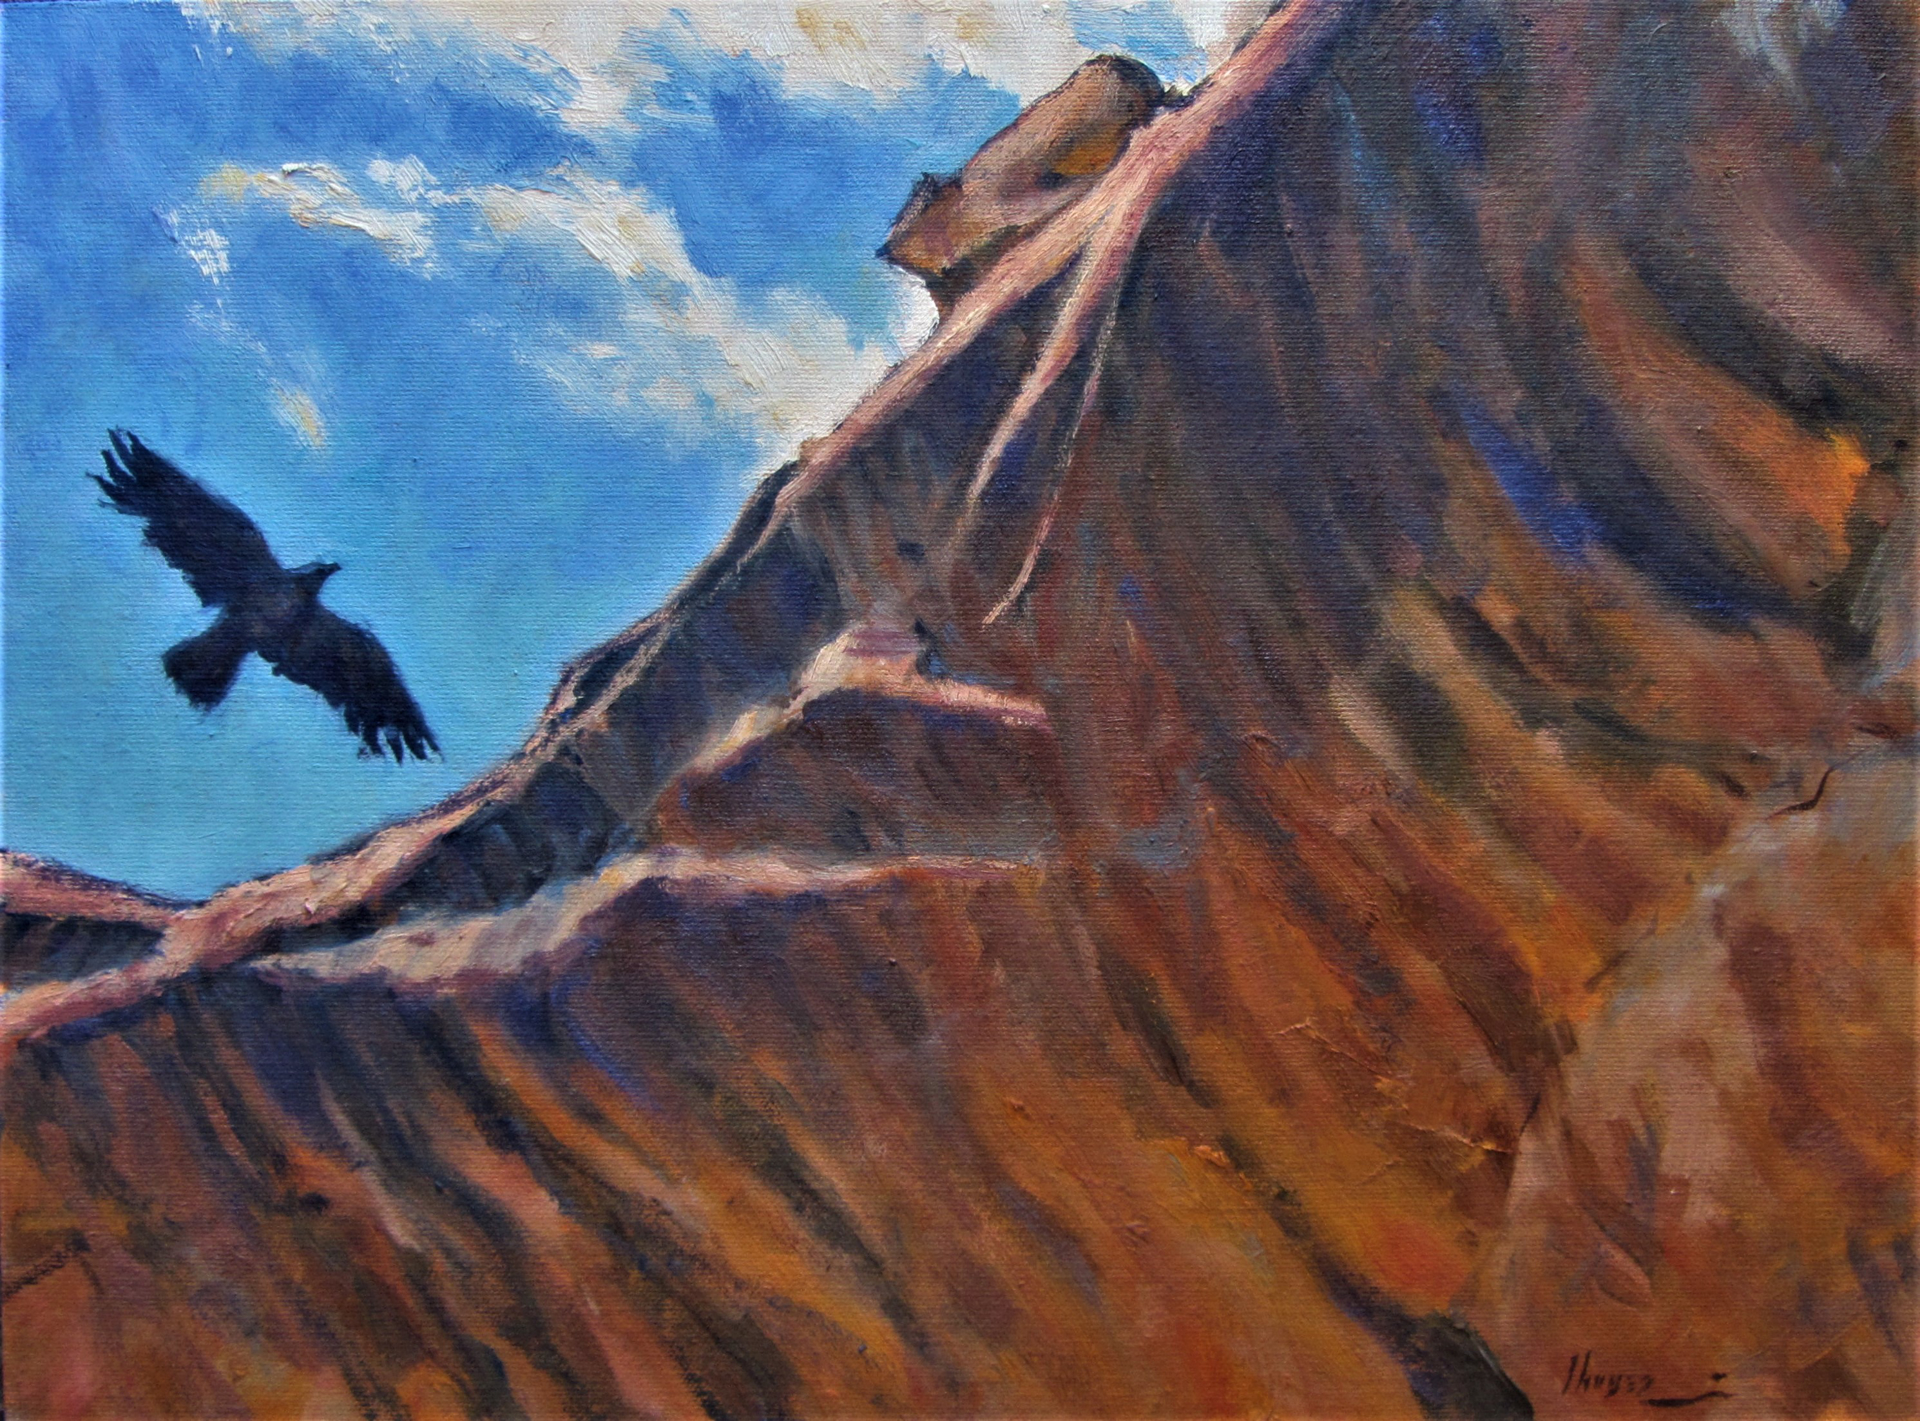 Canyon of the Crow by Lorenzo Chavez